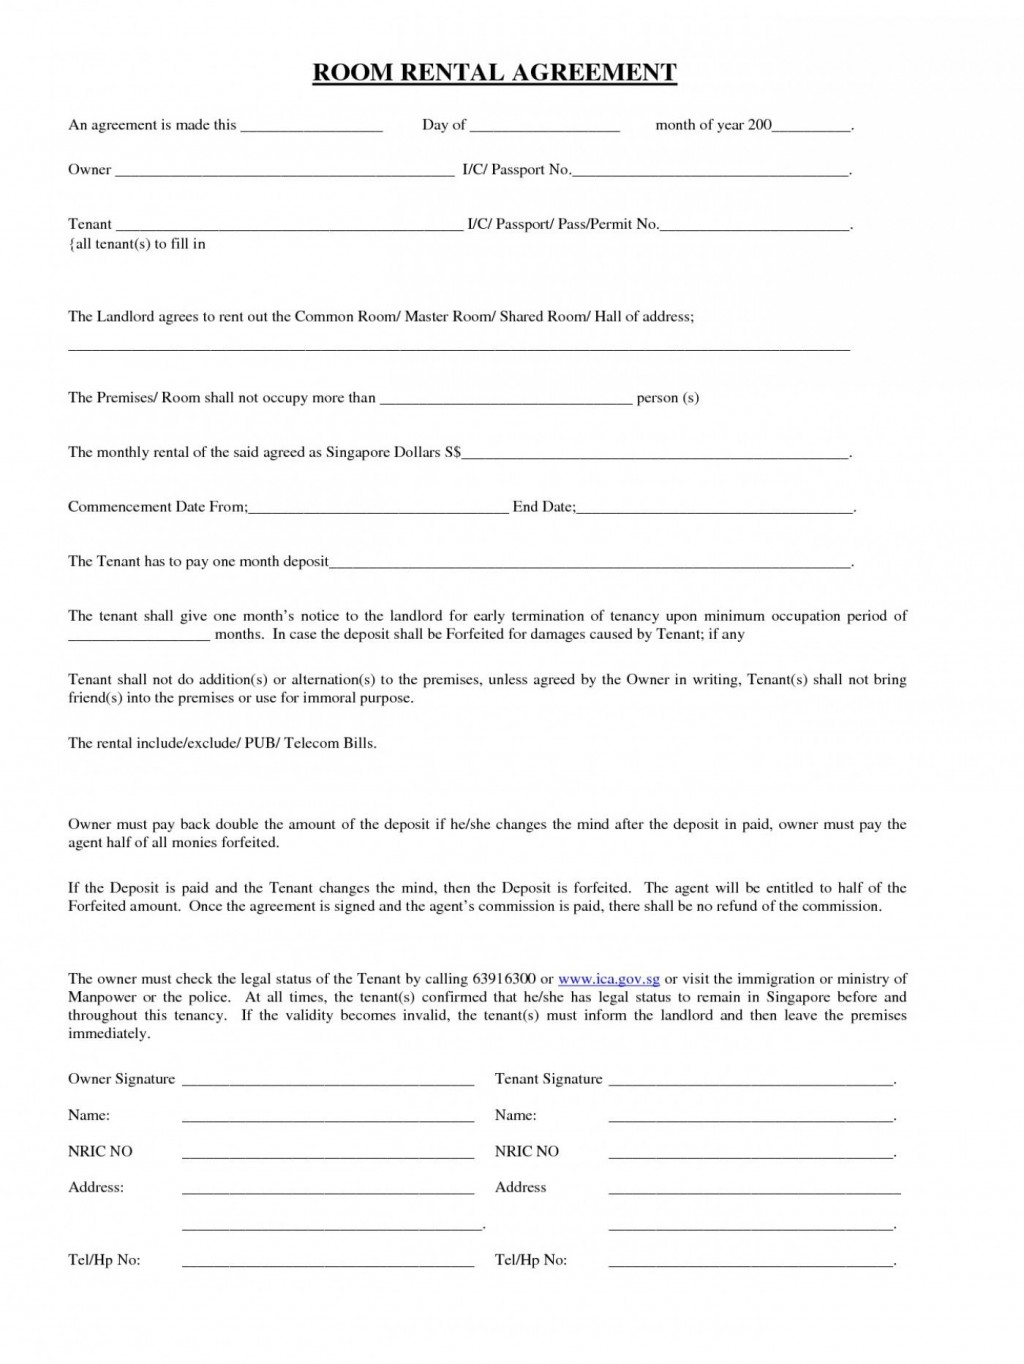 008 Impressive Free Sublease Agreement Template South Africa Sample  Simple Residential Lease Word DownloadLarge